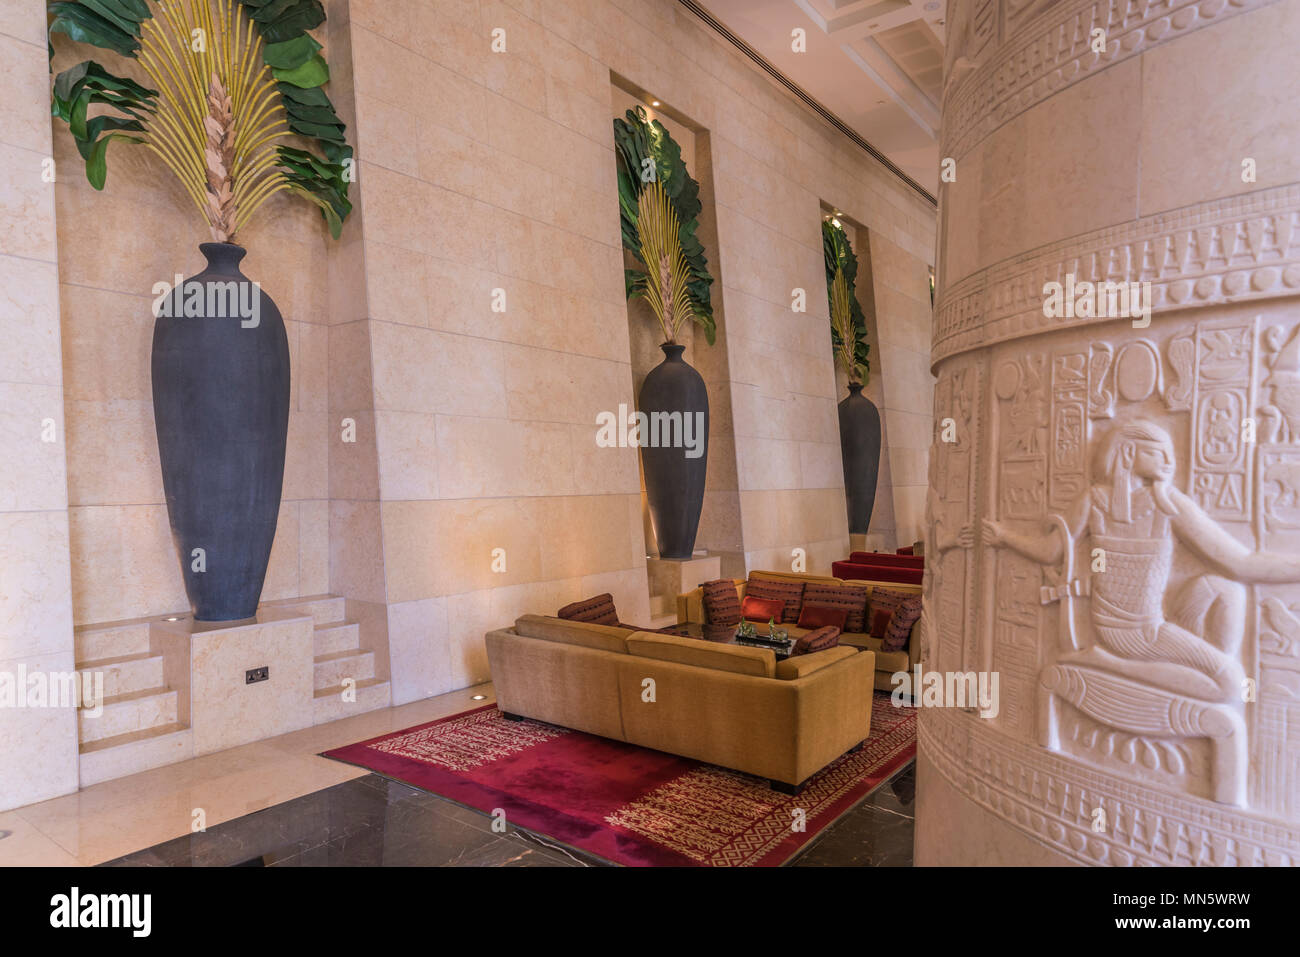 The interior furnishing of the Raffles Hotel in Dubai, UAE, Middle East - Stock Image